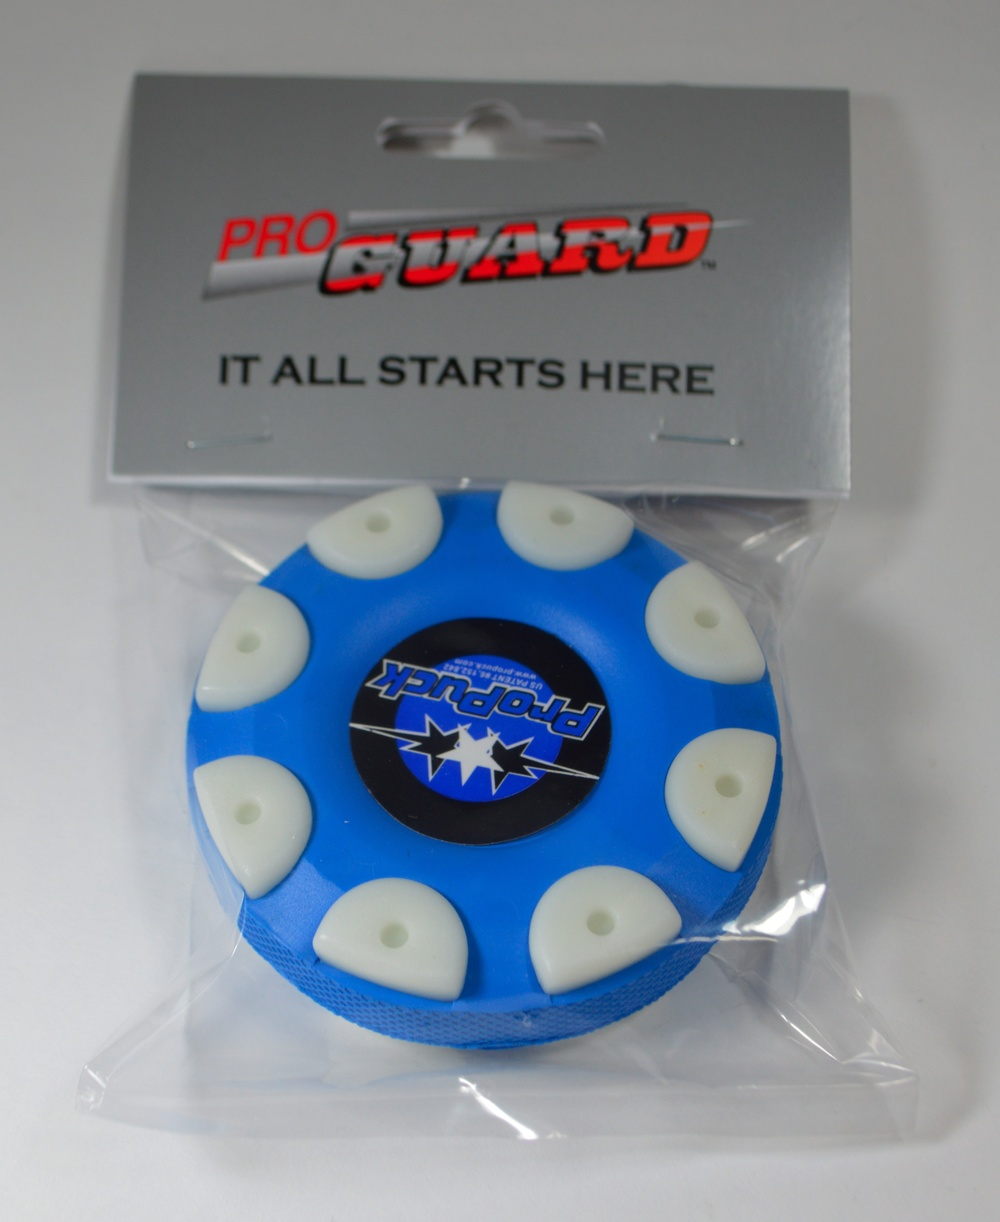 8183BLC Blue Pro Puck Carded.jpg